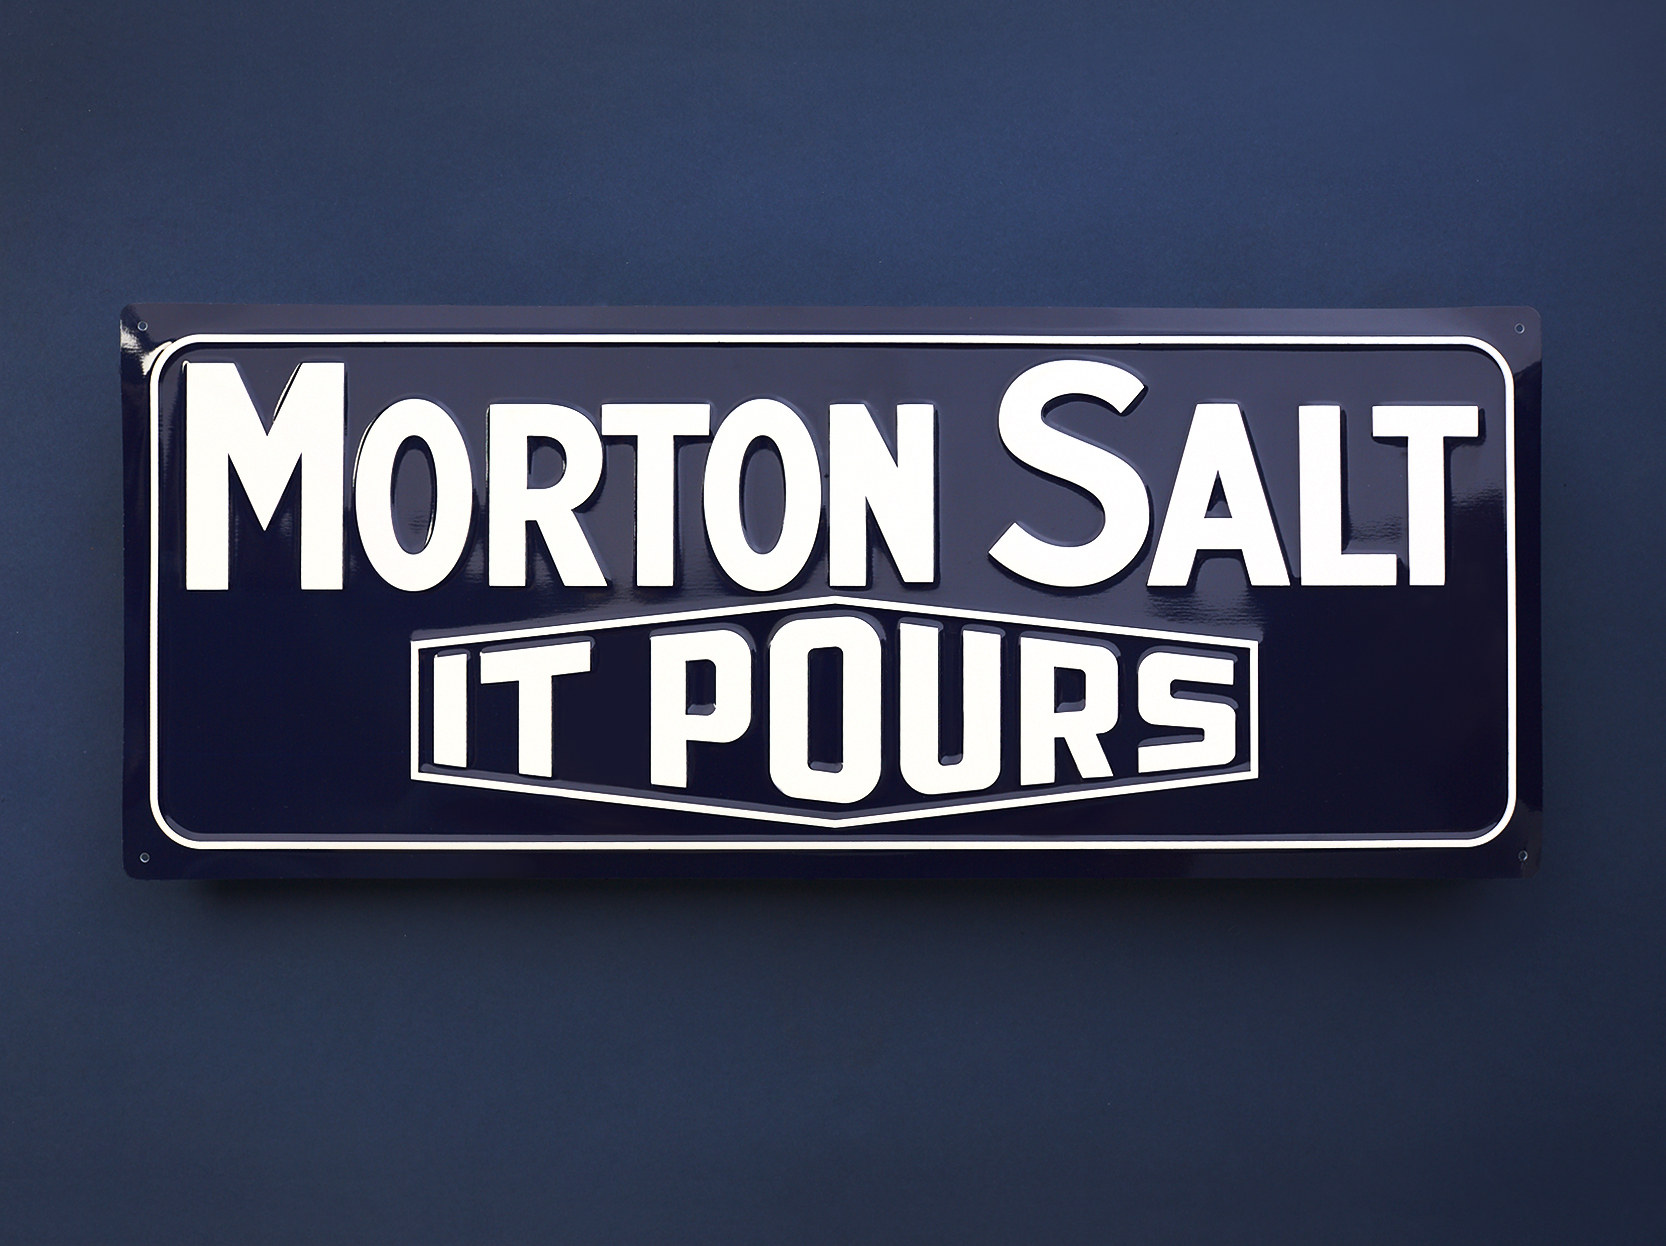 1__38_MORTON_SALT_ITPOURS_SIGN_01864_retouched.jpg